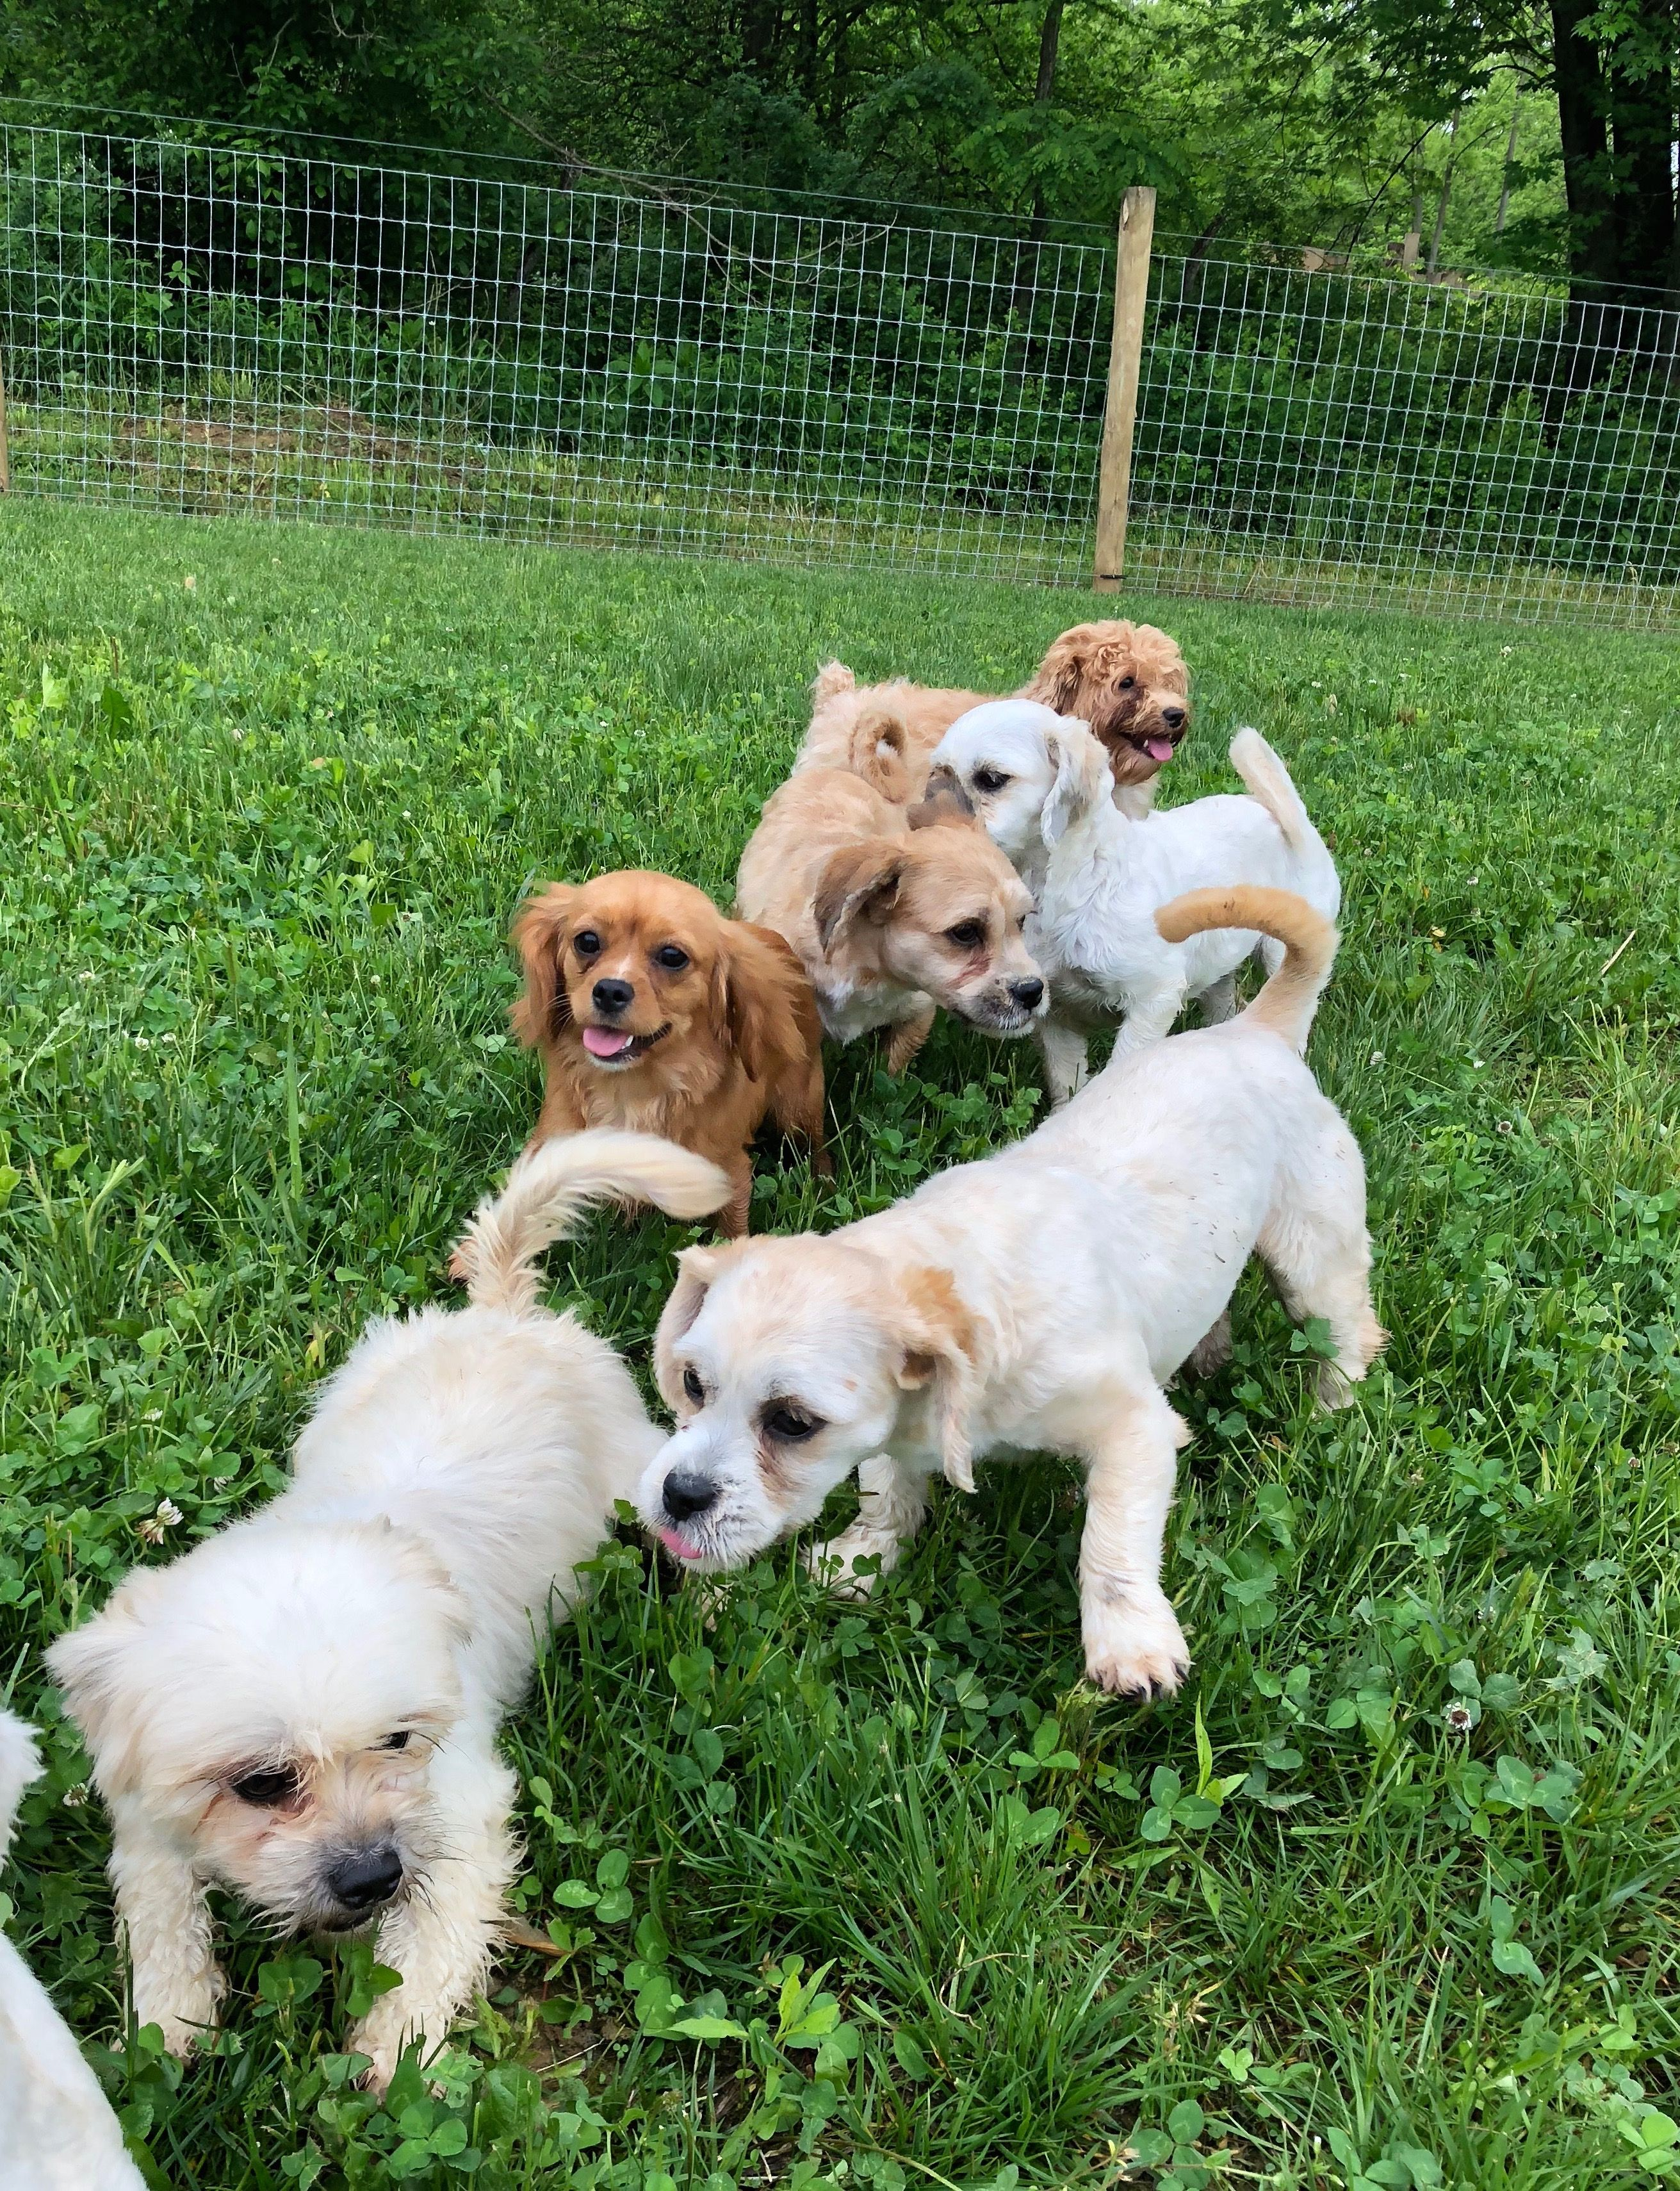 Dogs And Puppies For Sale Petland Novi Michigan Puppy Store Puppy Store Puppies For Sale Puppies